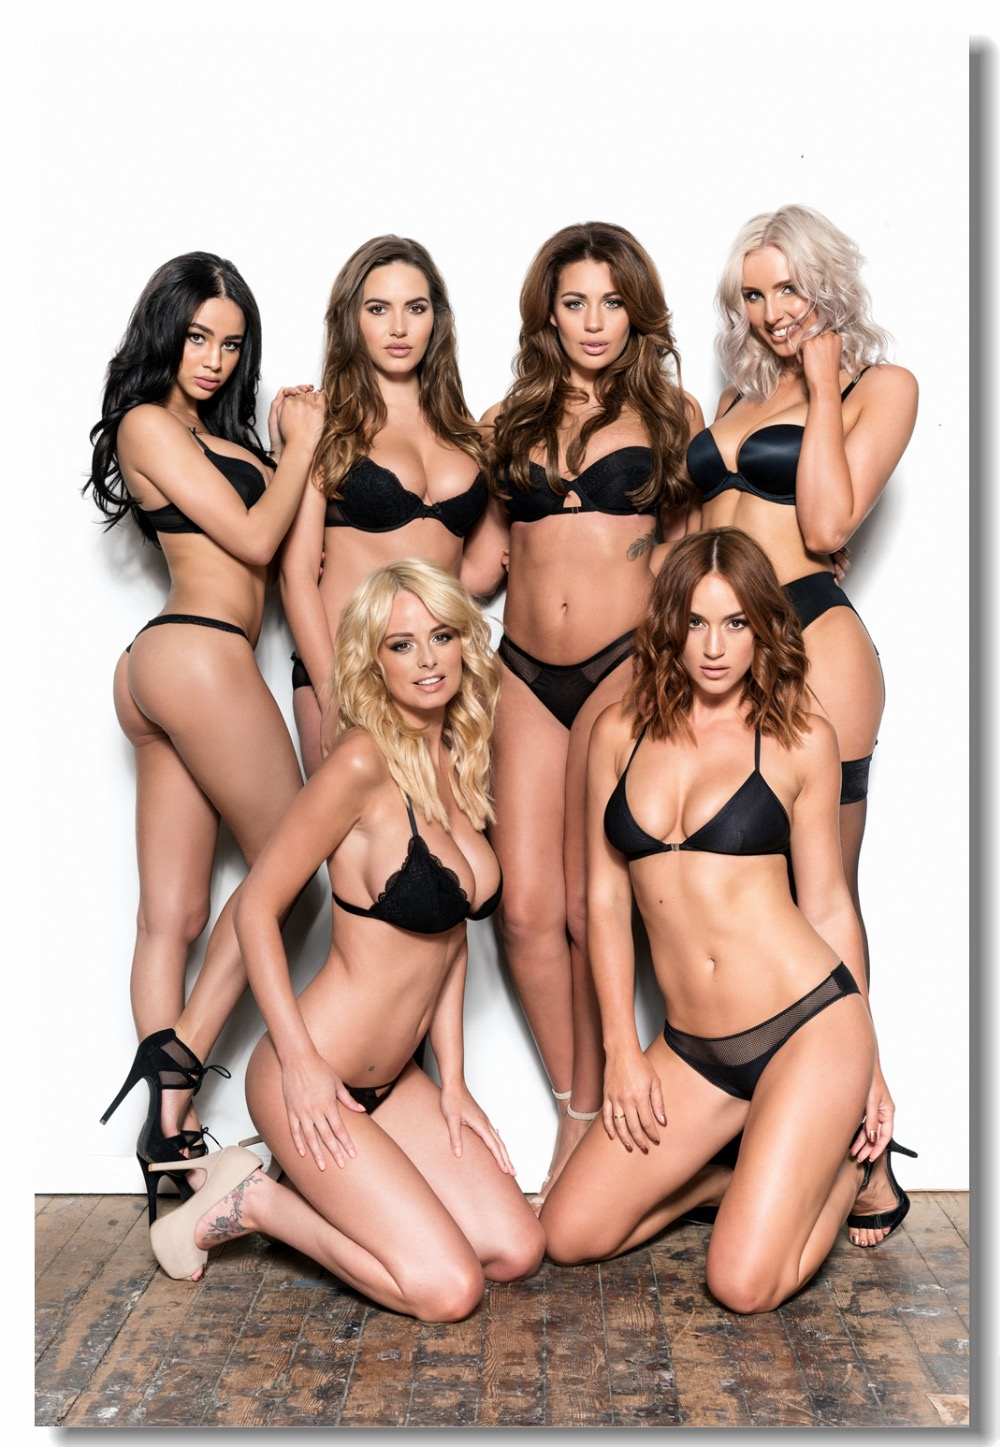 Custom Canvas Wall Decals Sexy Girls Holly Peers Rosie Jones Poster Rhian Sugden Wall Stickers Leighton Meester Wallpaper #0047#